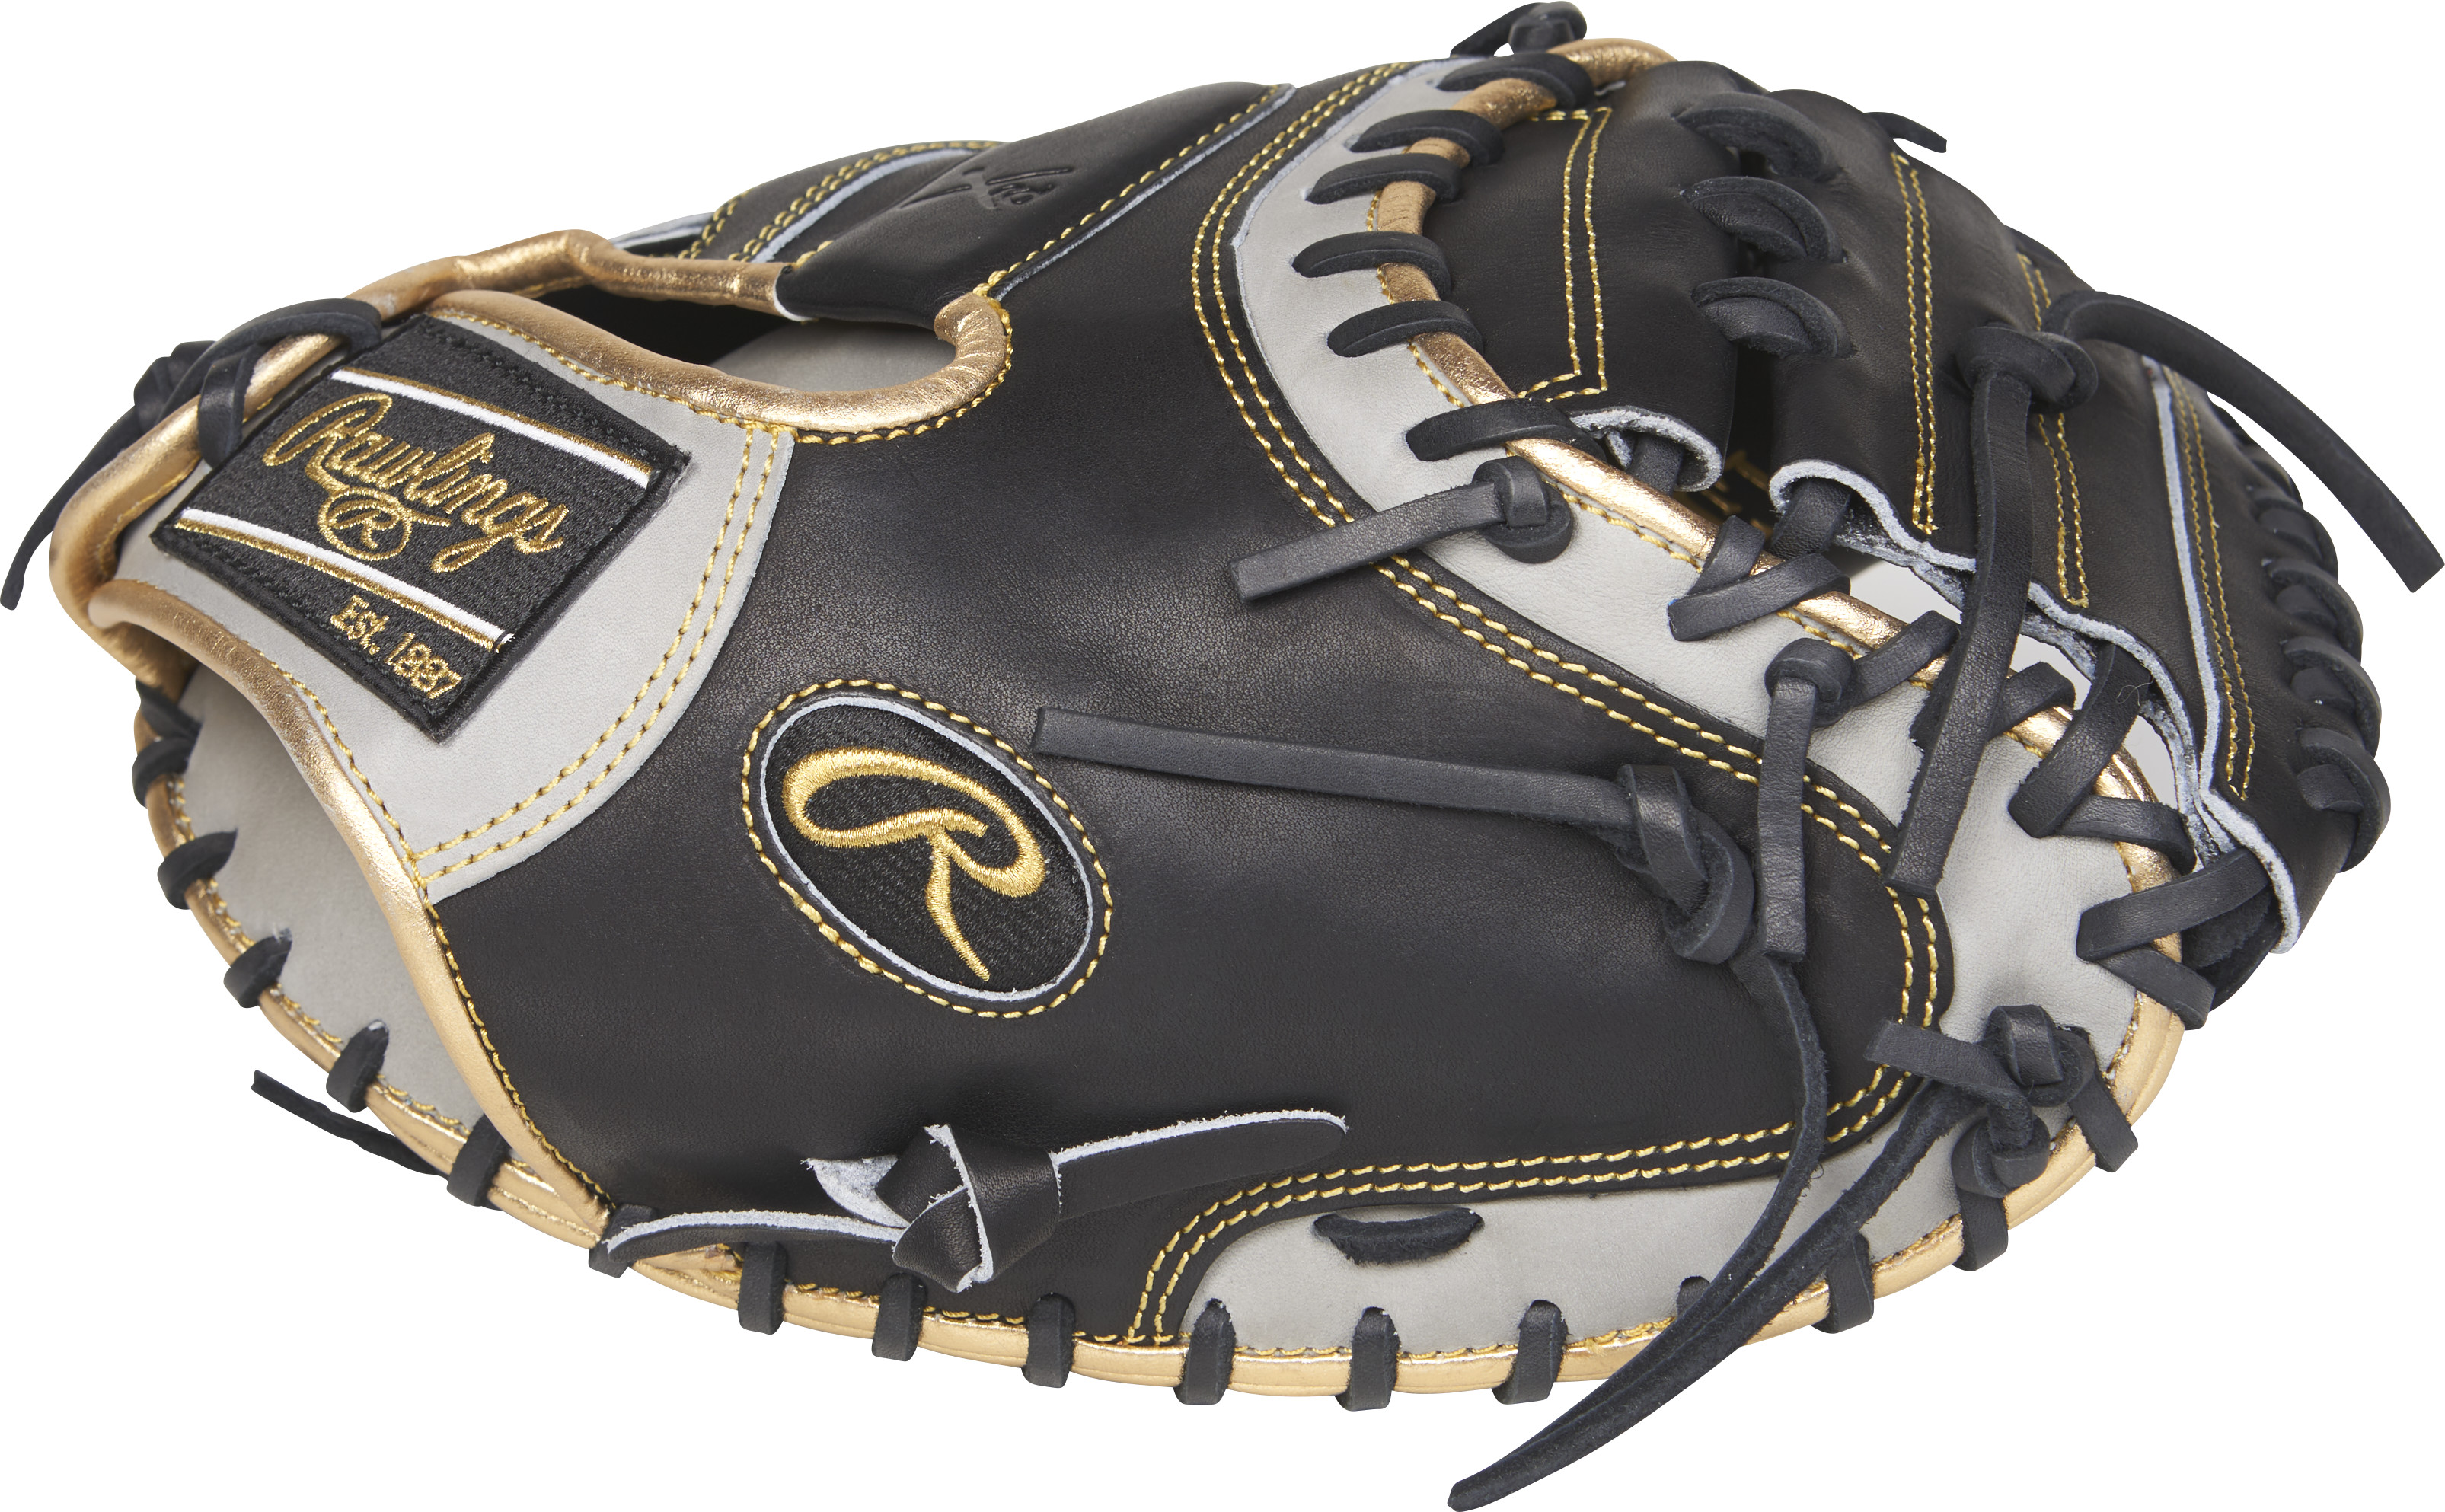 http://www.bestbatdeals.com/images/gloves/rawlings/PROCM33BGG-3.jpg